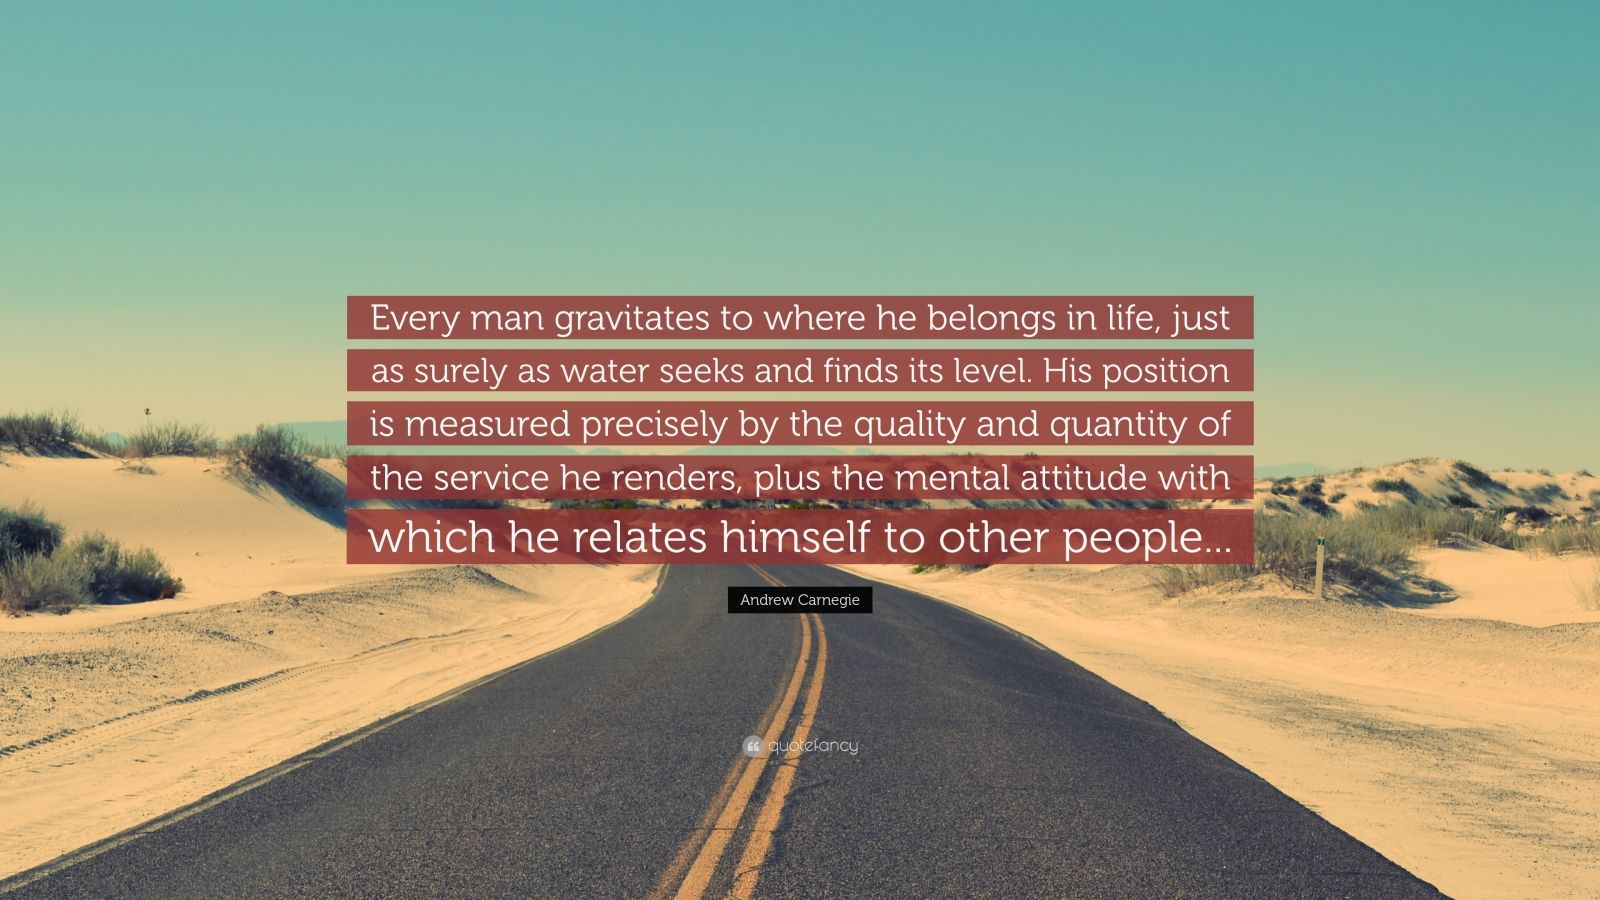 """Andrew Carnegie Quote: """"Every man gravitates to where he belongs in life, just as surely as water seeks and finds its level. His position is measured precisely by the quality and quantity of the service he renders, plus the mental attitude with which he relates himself to other people..."""""""